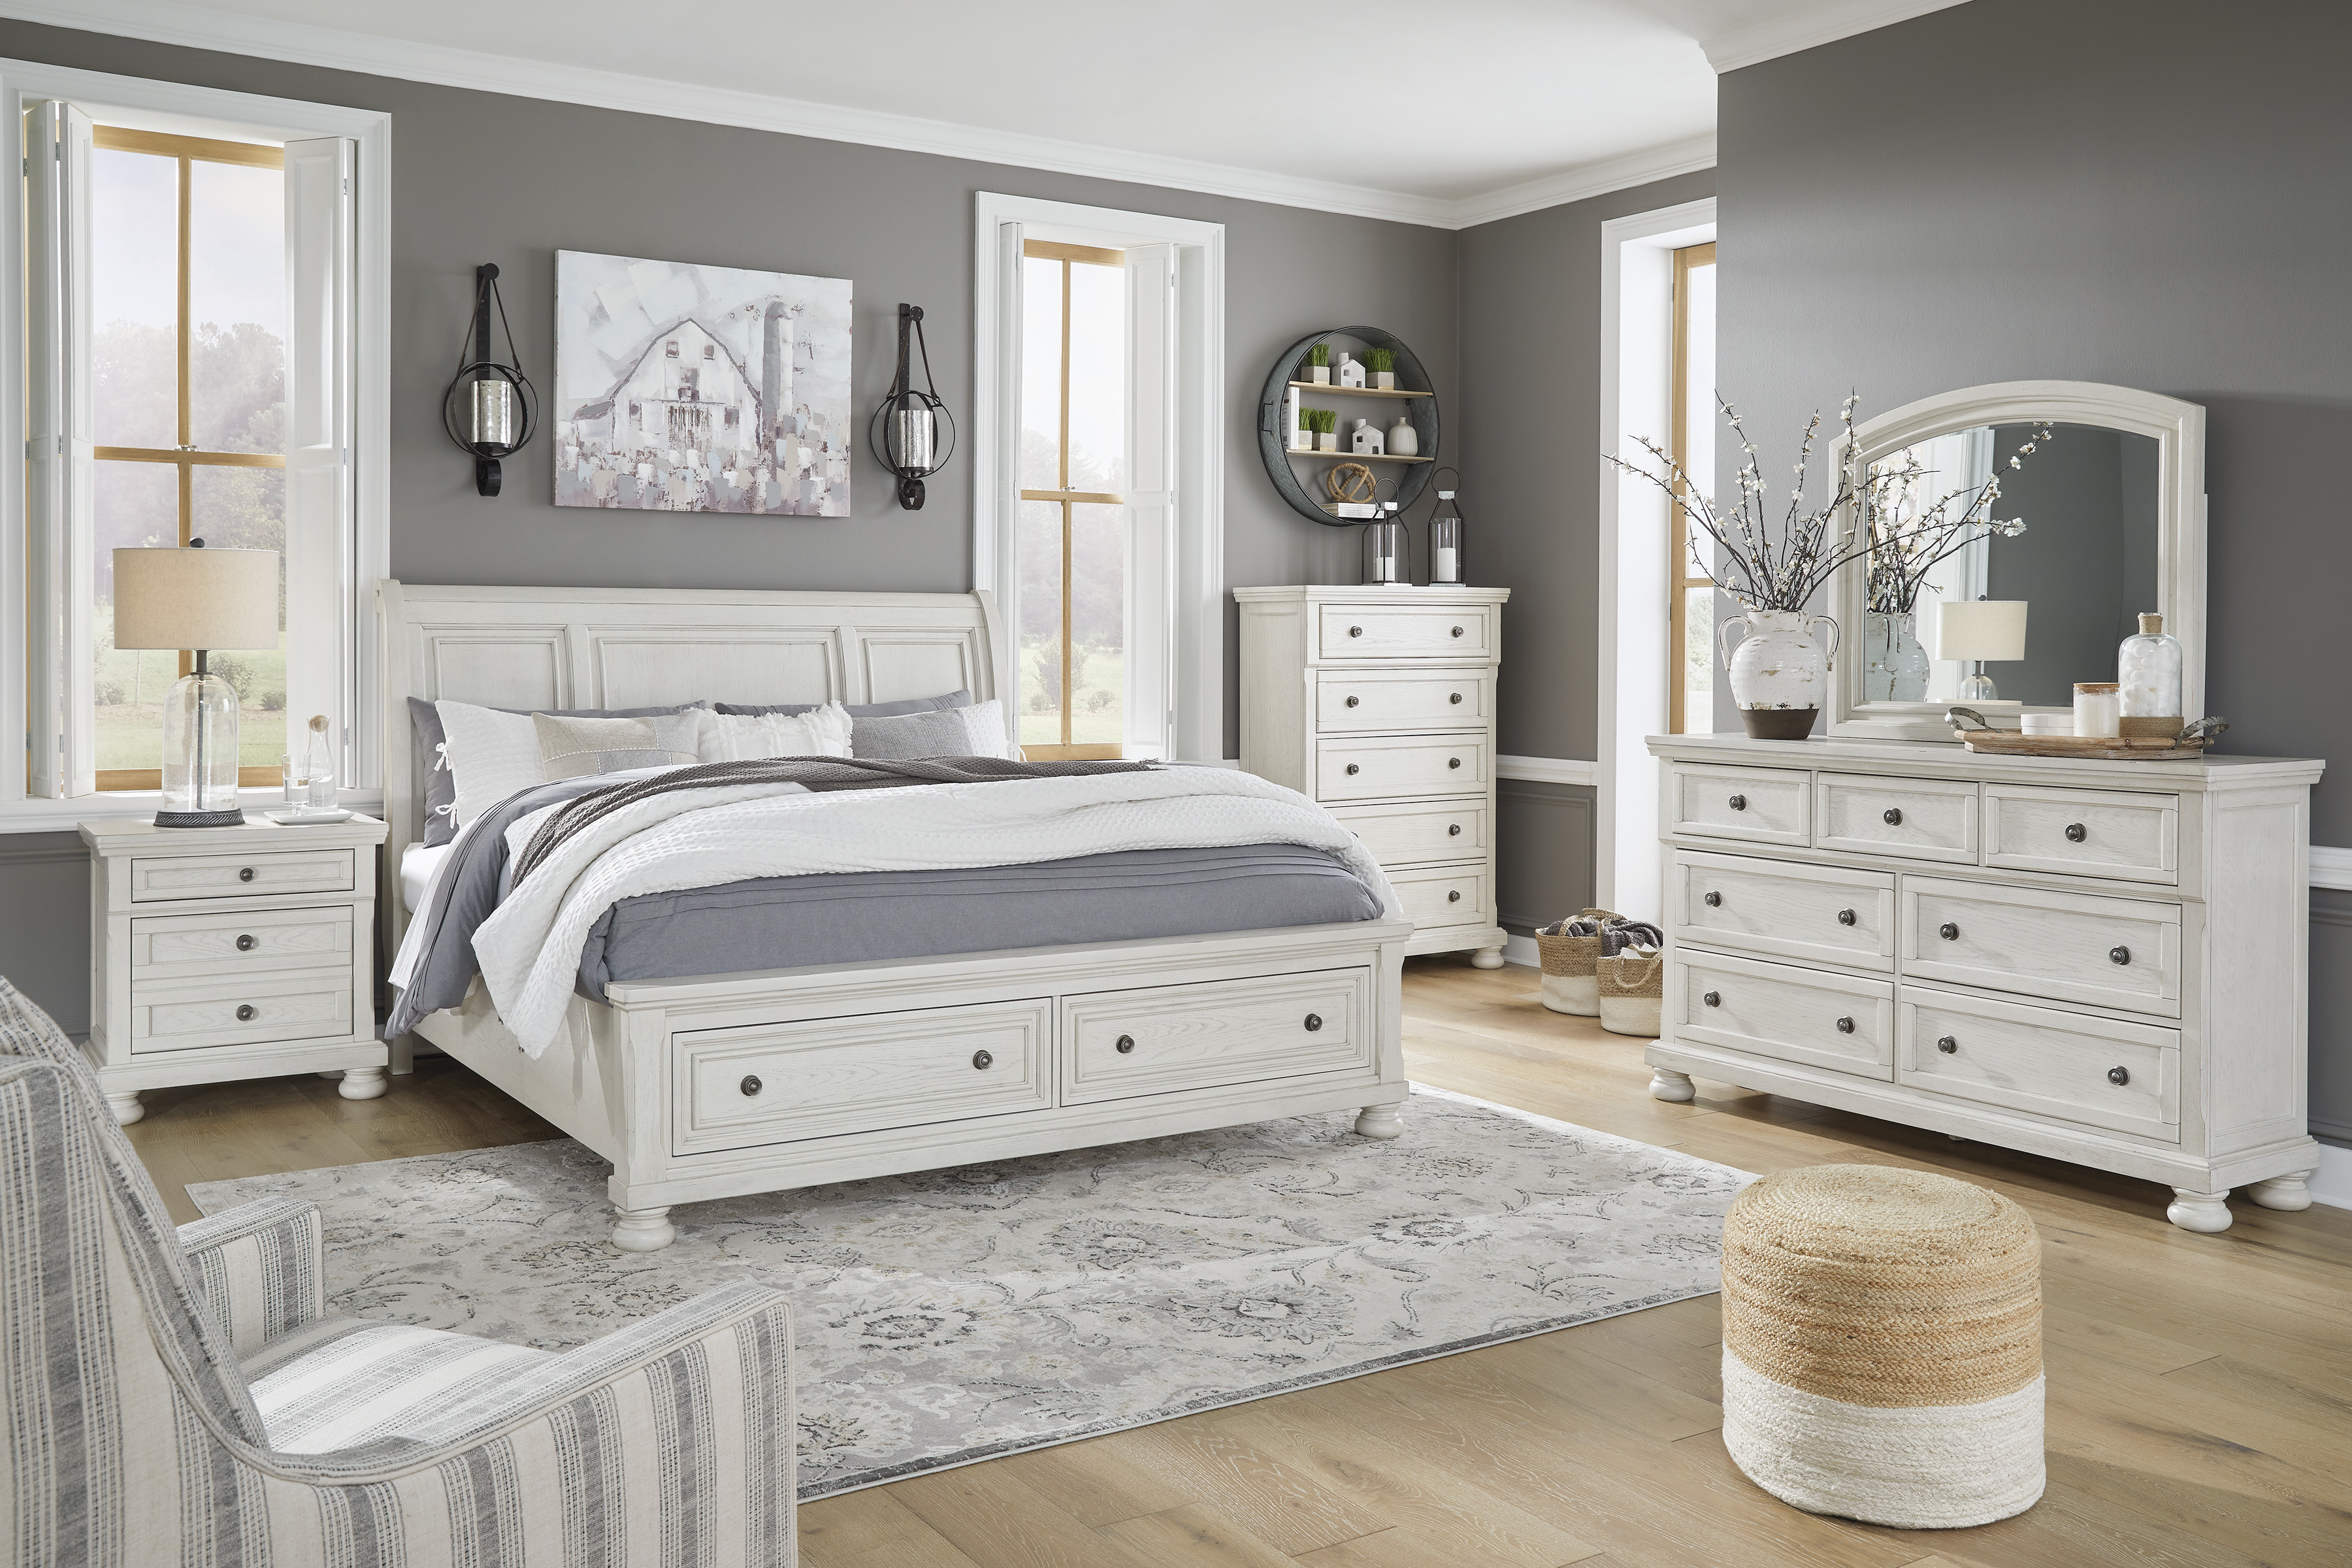 Robbinsdale Bedroom Groups by Signature Design by Ashley at Dream Home Interiors